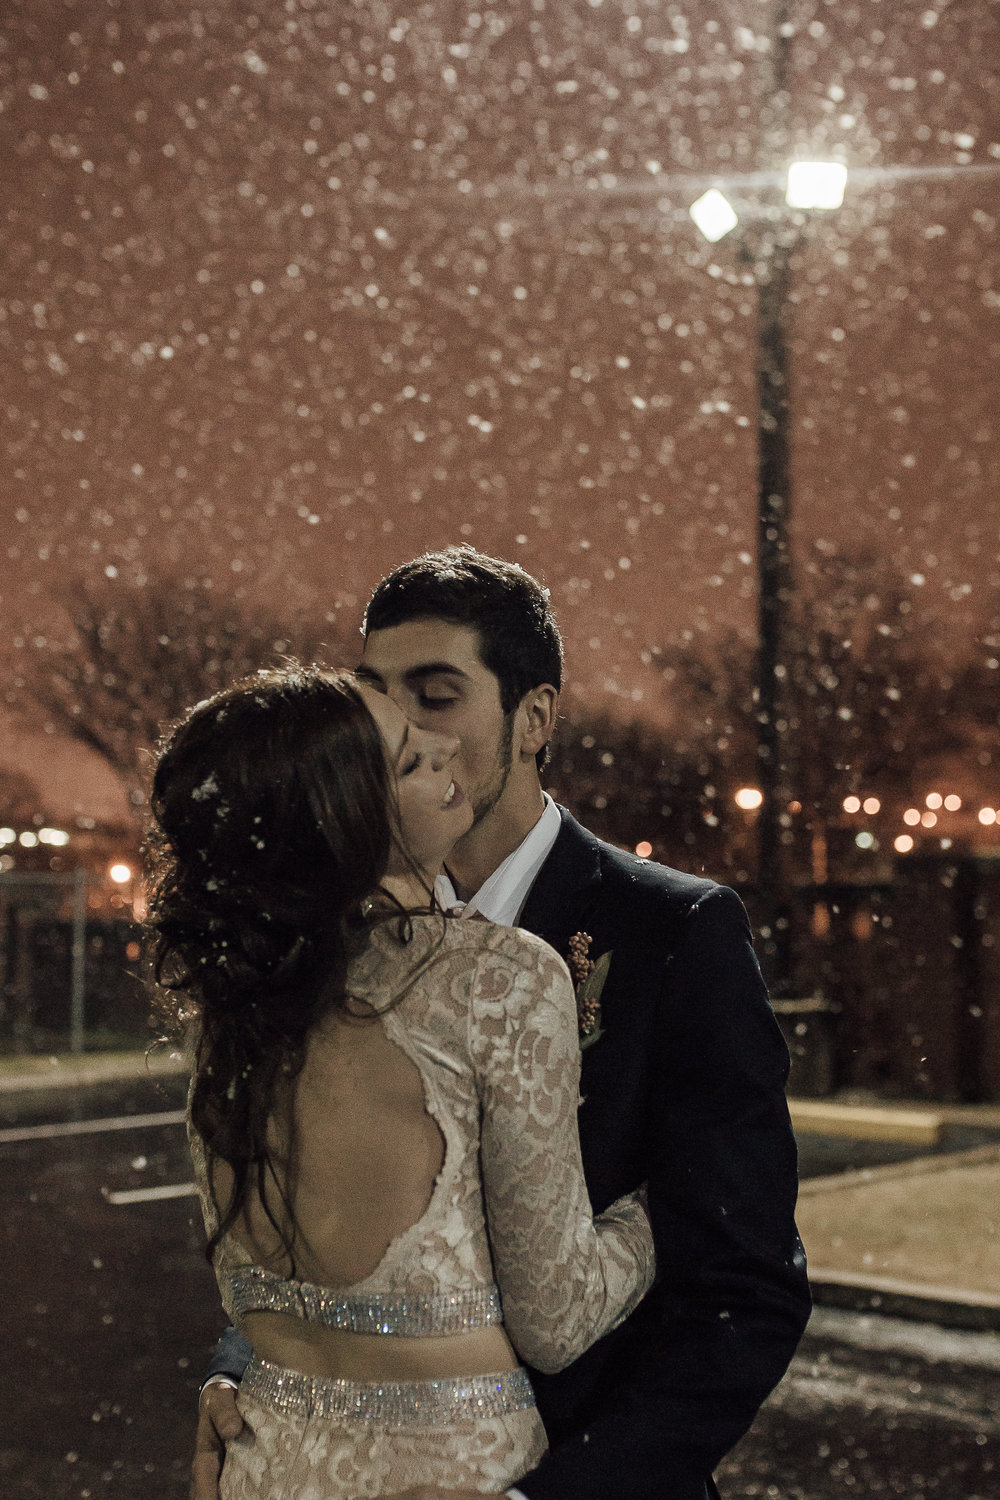 cassie-cook-photographer-intimate-ceremony-elopement-white-wedding-winter-wedding